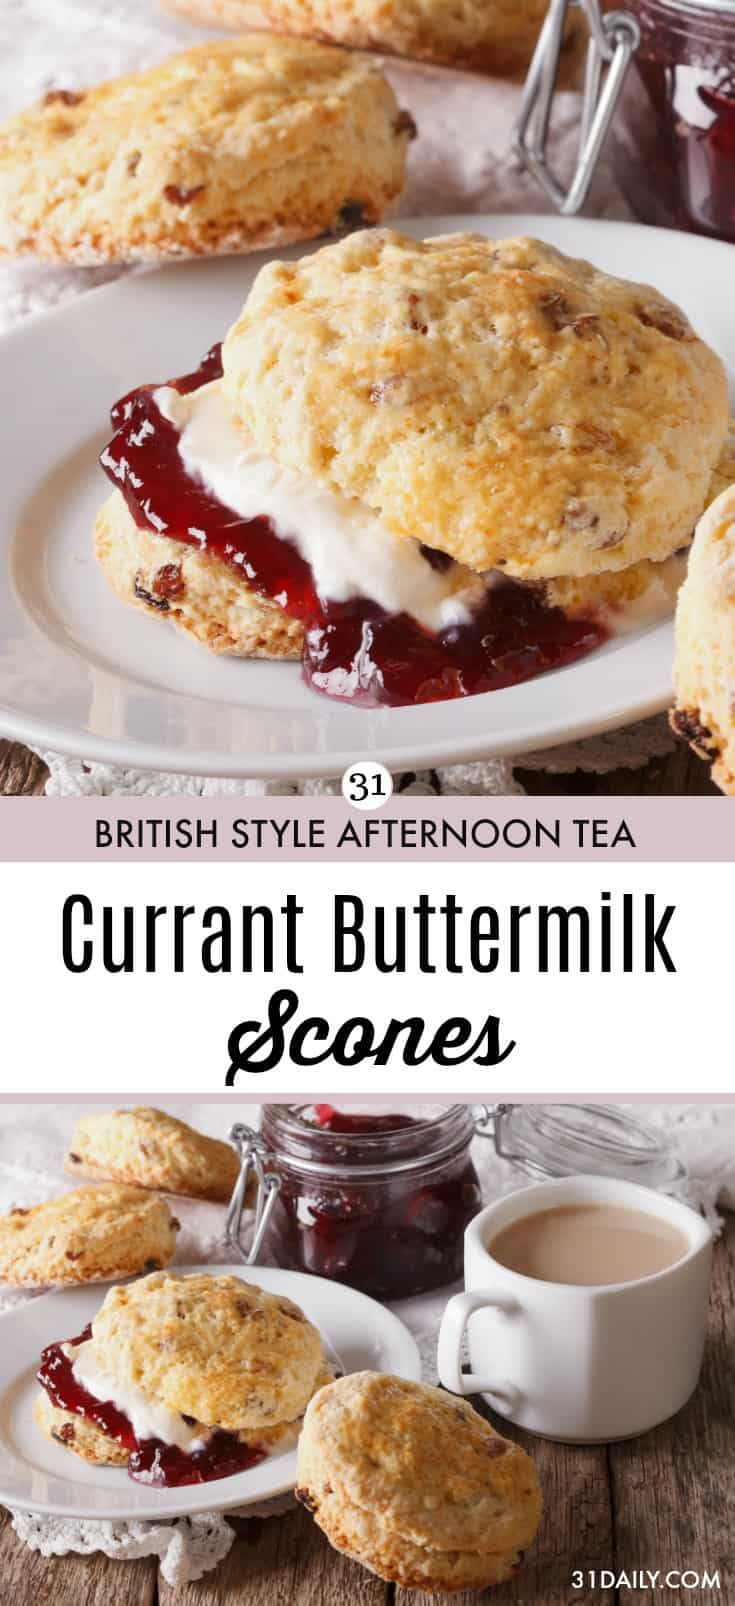 Simple and Easy Currant Buttermilk Scones Recipe at 31Daily.com